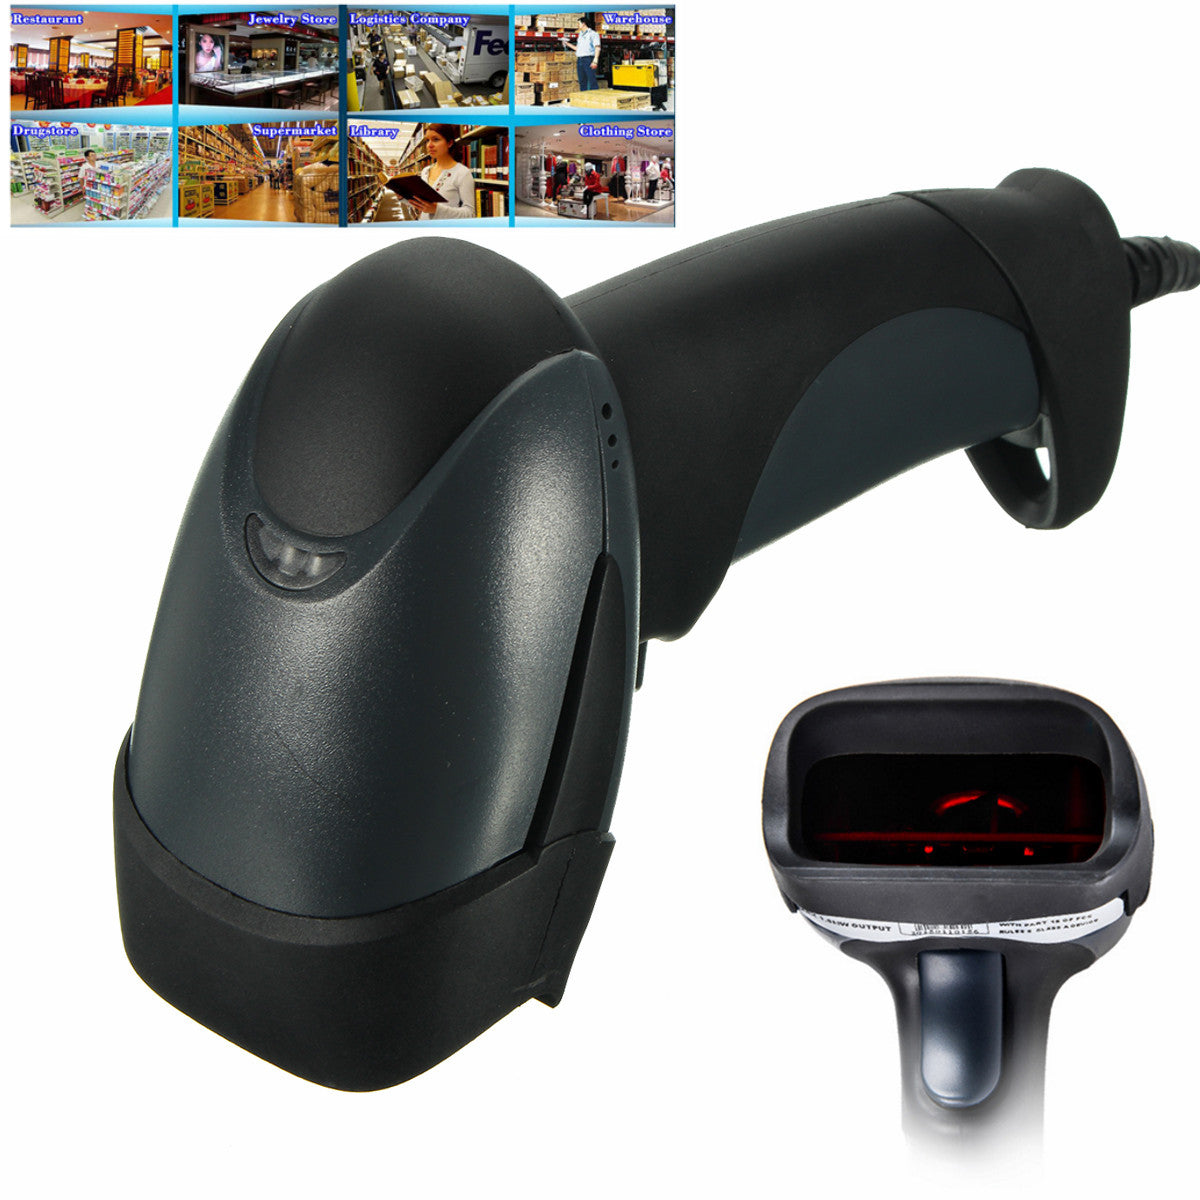 Handheld USB Port Laser Barcode Scanner Bar Code Reader For POS Computer Shop